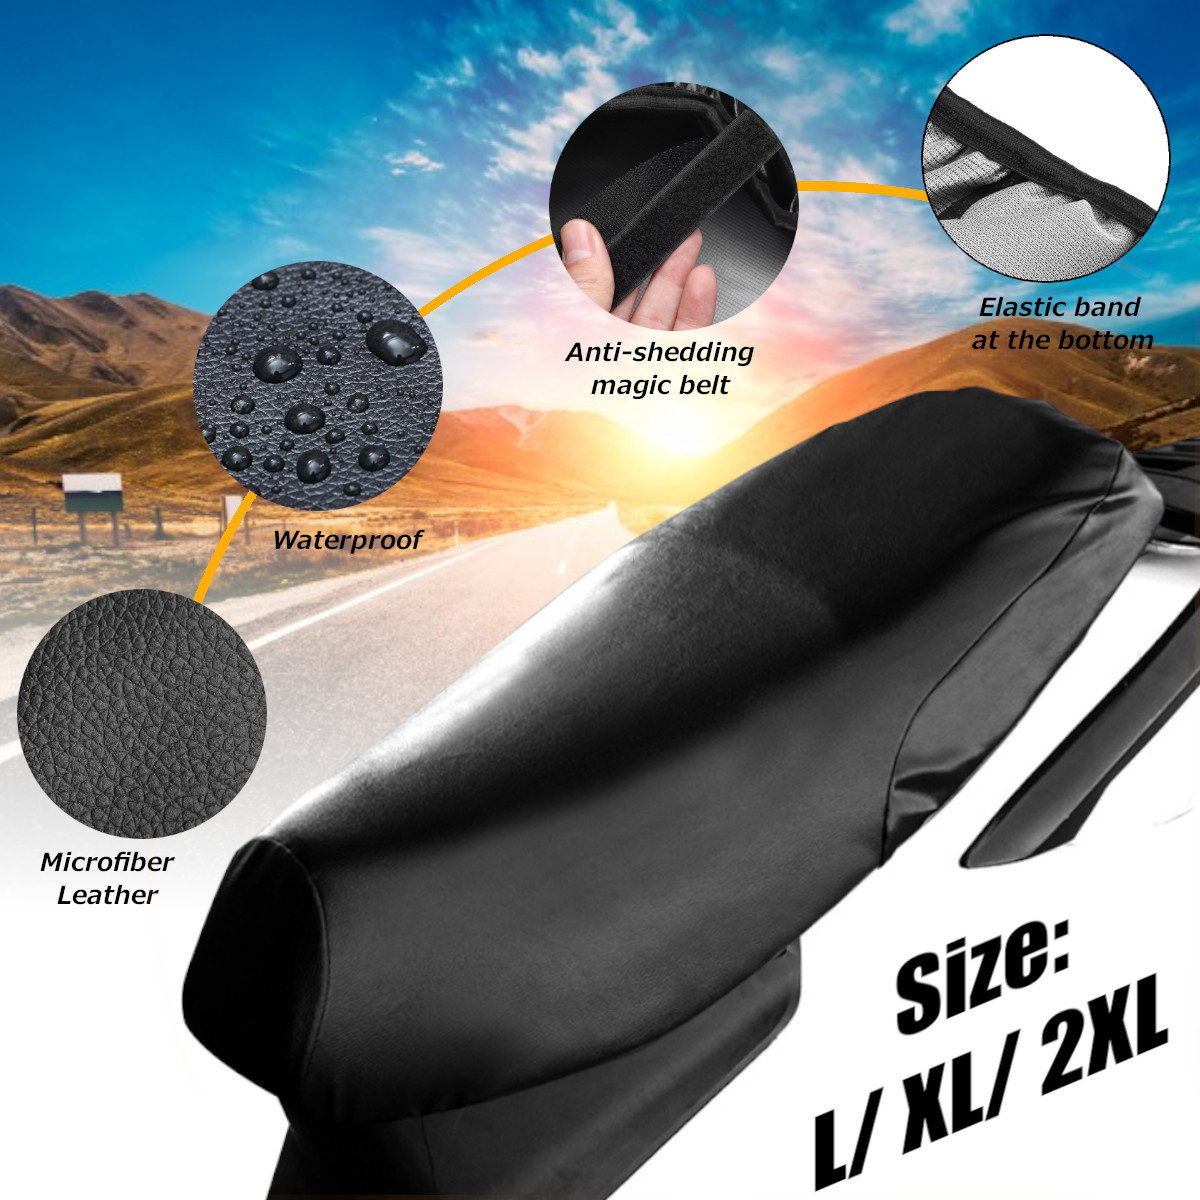 Universal Motorcycle Seat Cushion Cover Cap Waterproof Sunscreen Prevent Bask In Seat Scooter Sun Pad Heat Insulation Protection